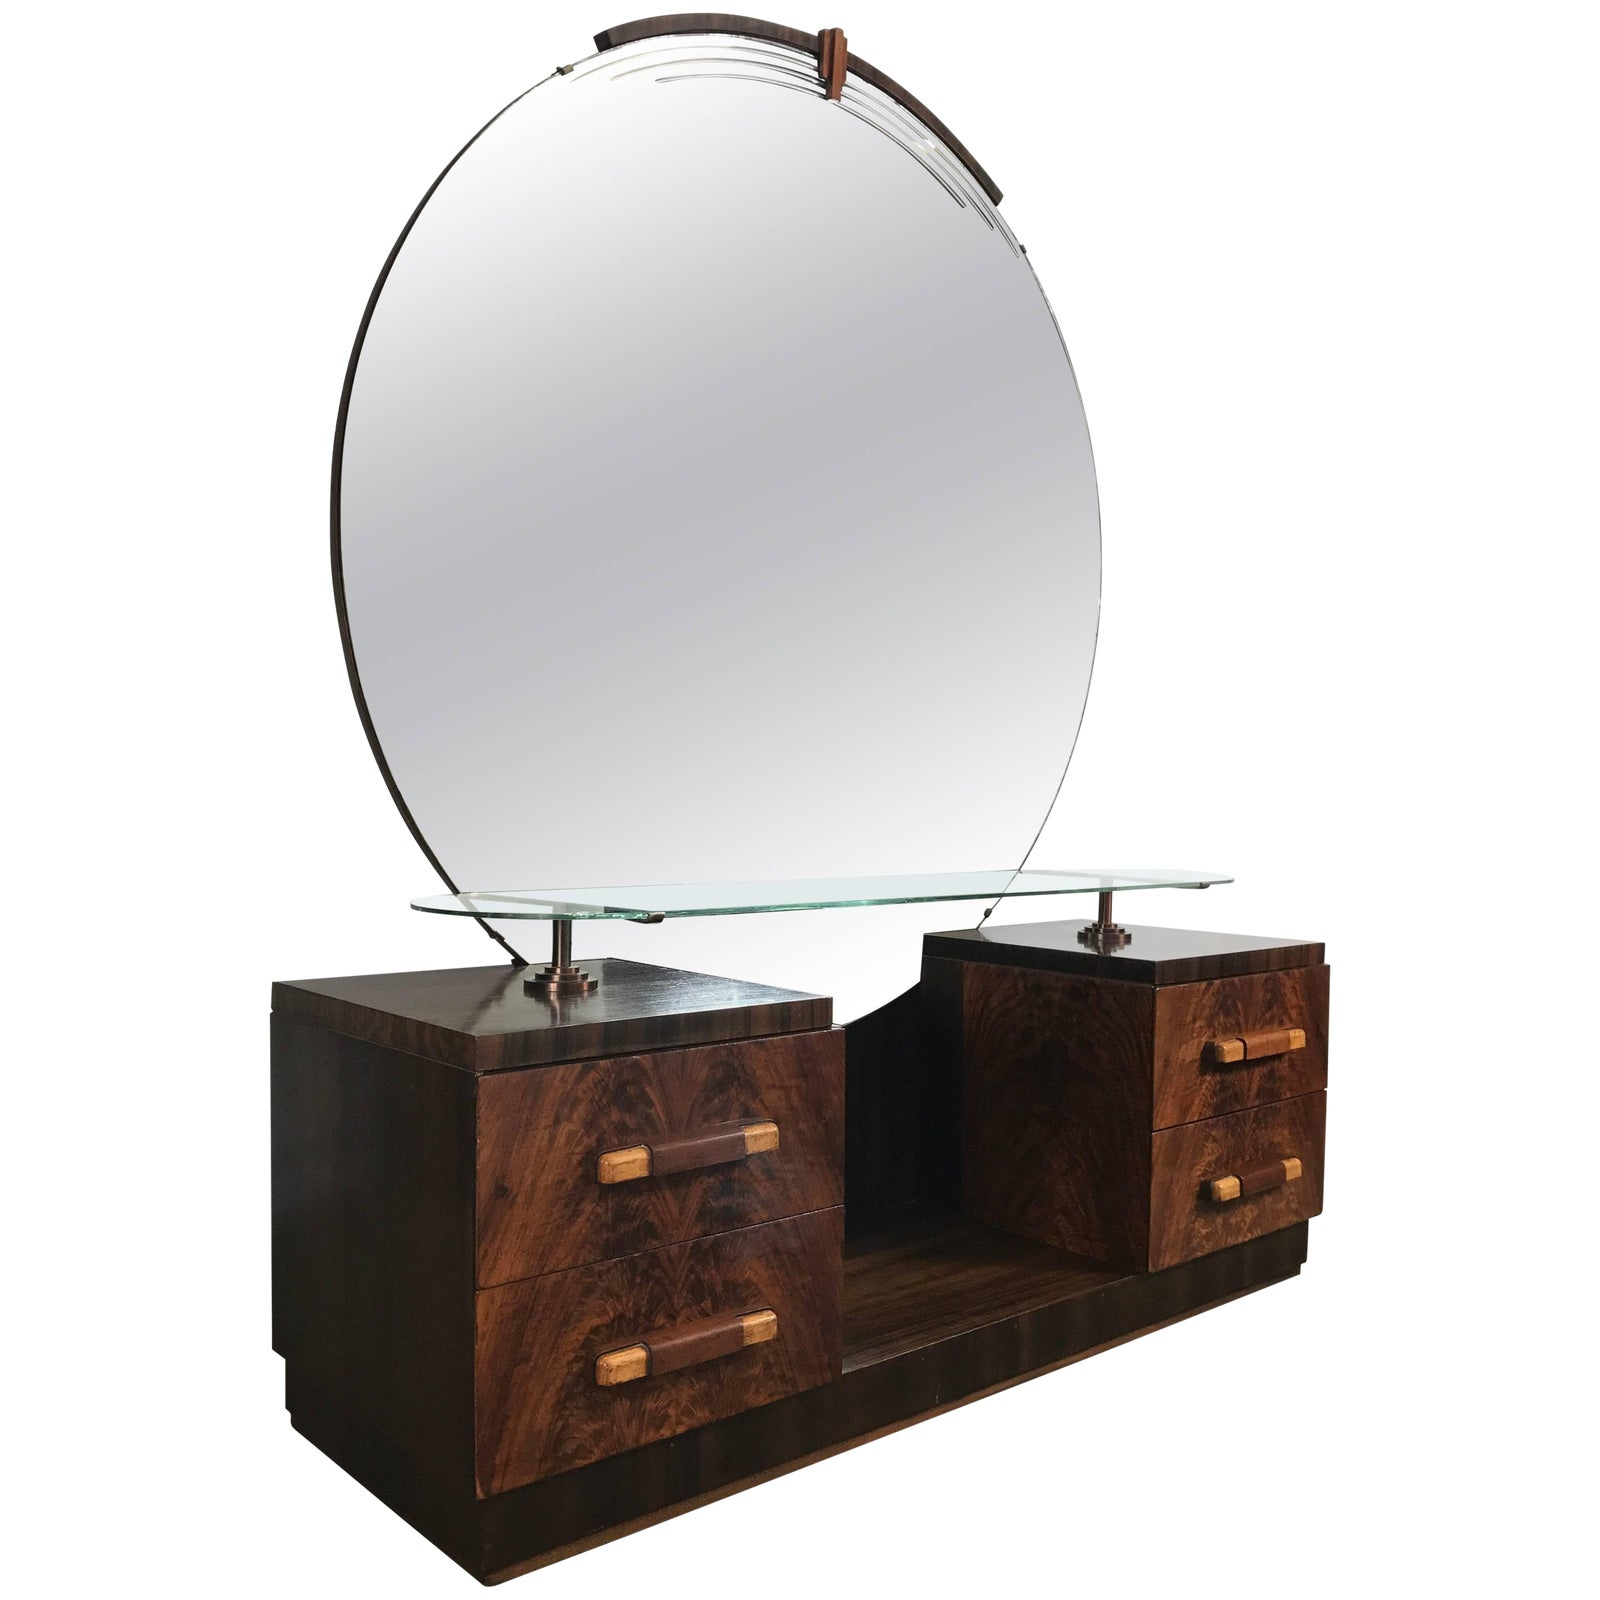 Art Deco Vanity | Vintage Vanity Inspiration | Mass Over Matter